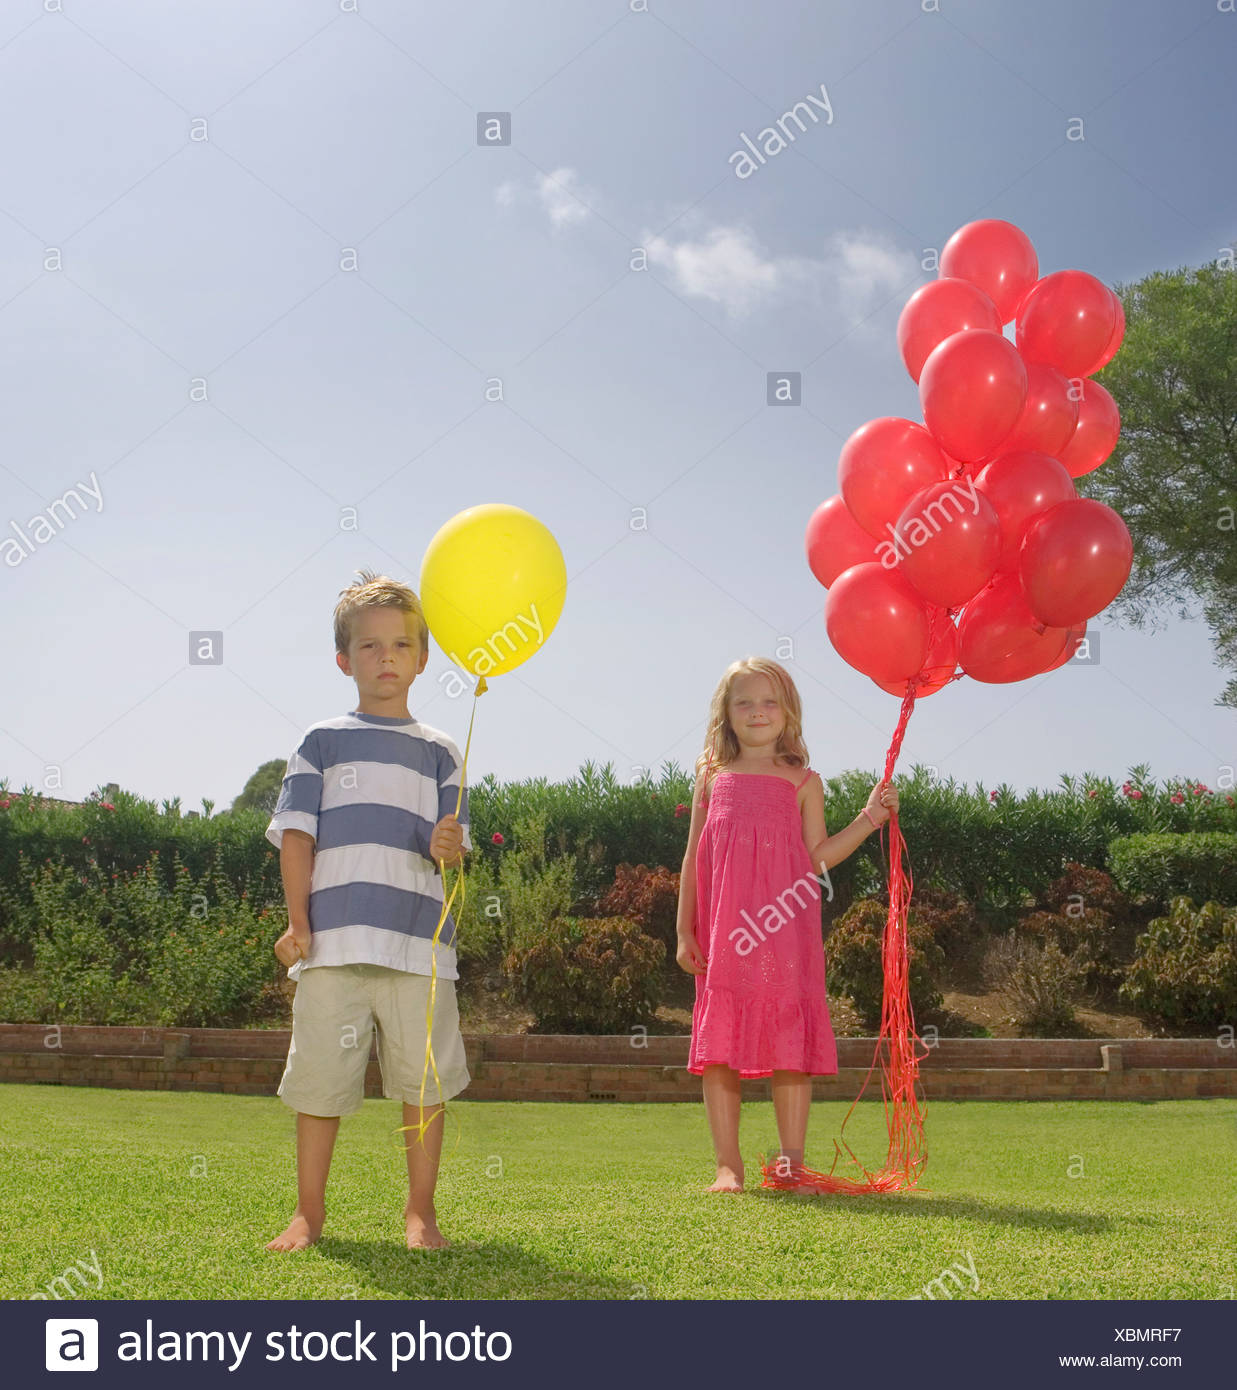 Les jeunes enfants holding red balloons Photo Stock